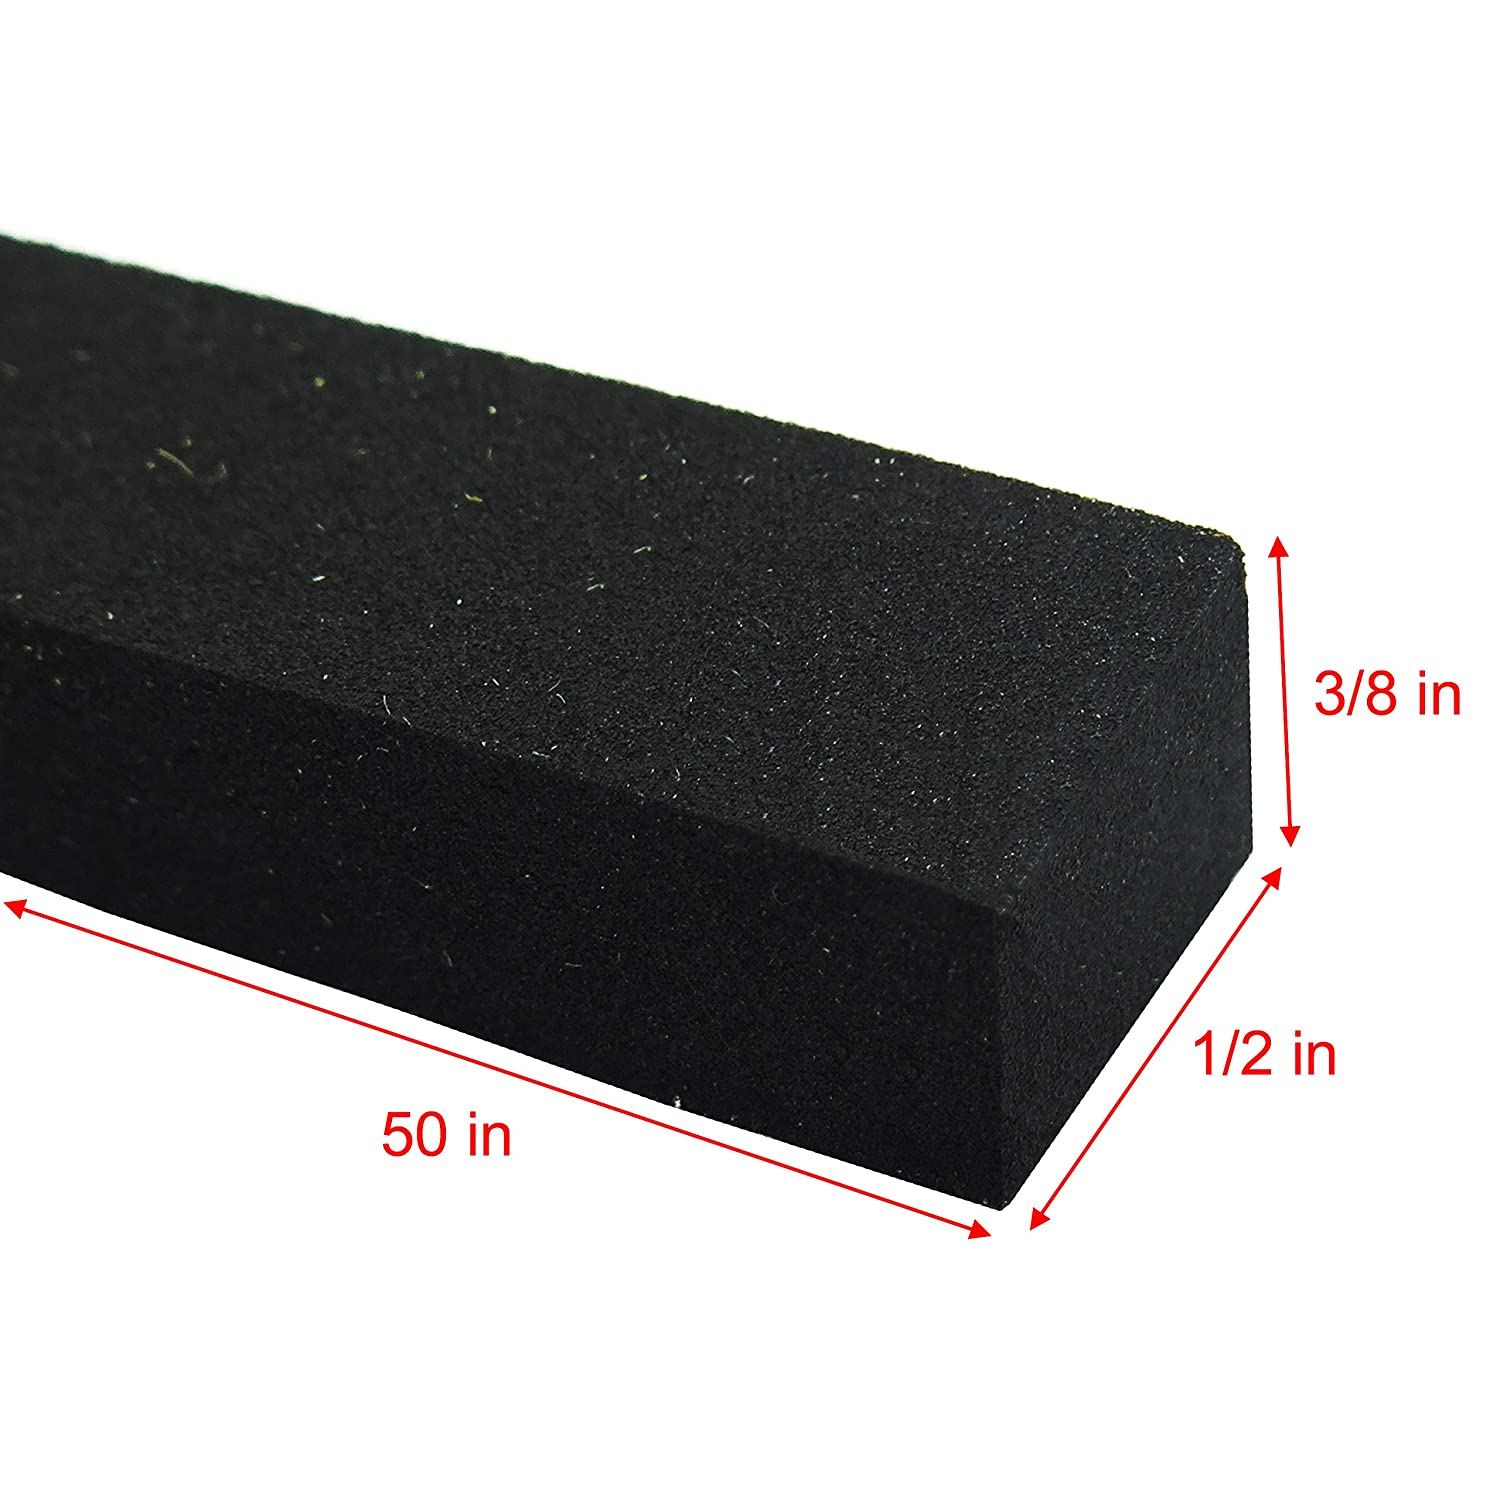 Self Adhesive Weather Stripping Insulation Roll LAZY DOG WAREHOUSE LDW241 1in x 3//4in x 32ft Neoprene Sponge Rubber Foam Tape